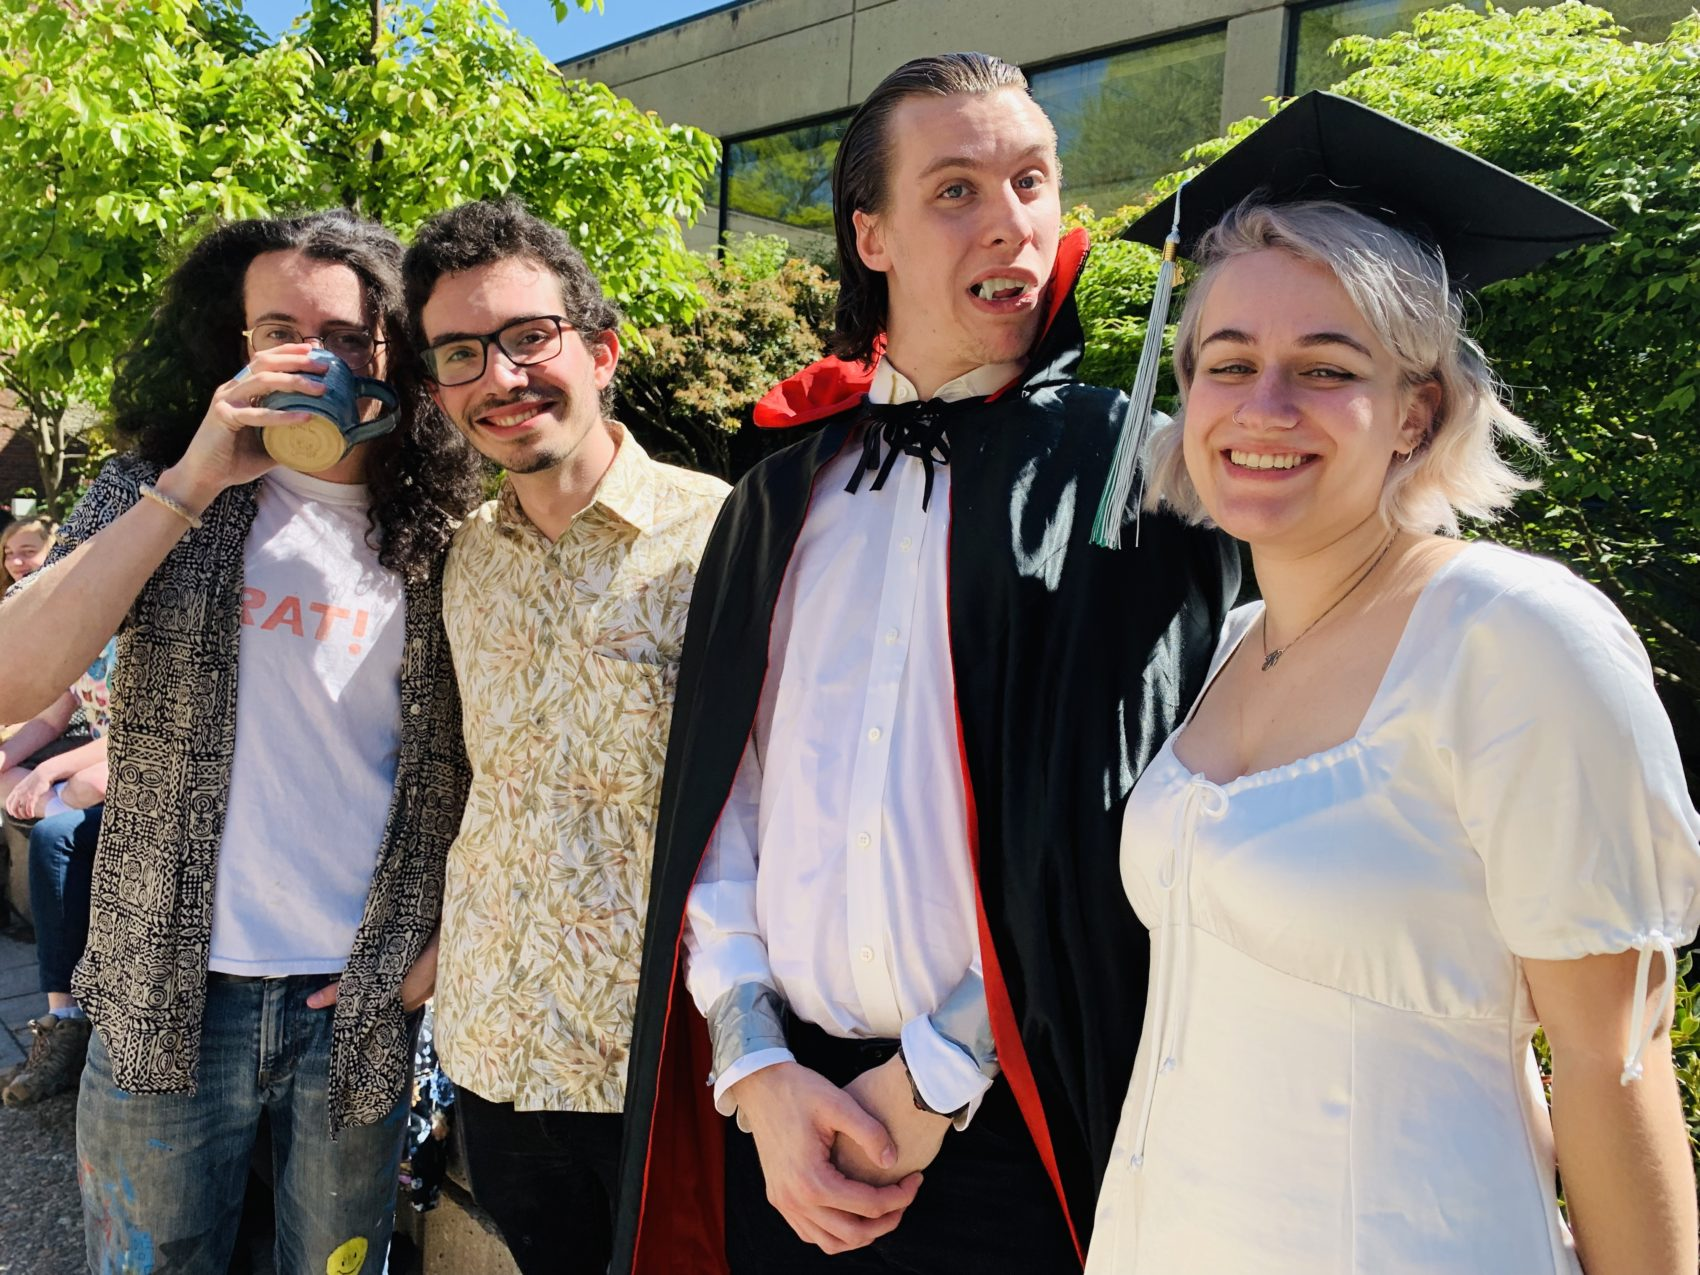 Friends Koby Leff, Walt Harms (dressed as Dracula) and Fiona Black wait with their fellow graduates before commencement kicks off. About half of the 295 students in line to graduate don't wear the traditional cap and gown. (Carrie Jung/WBUR)